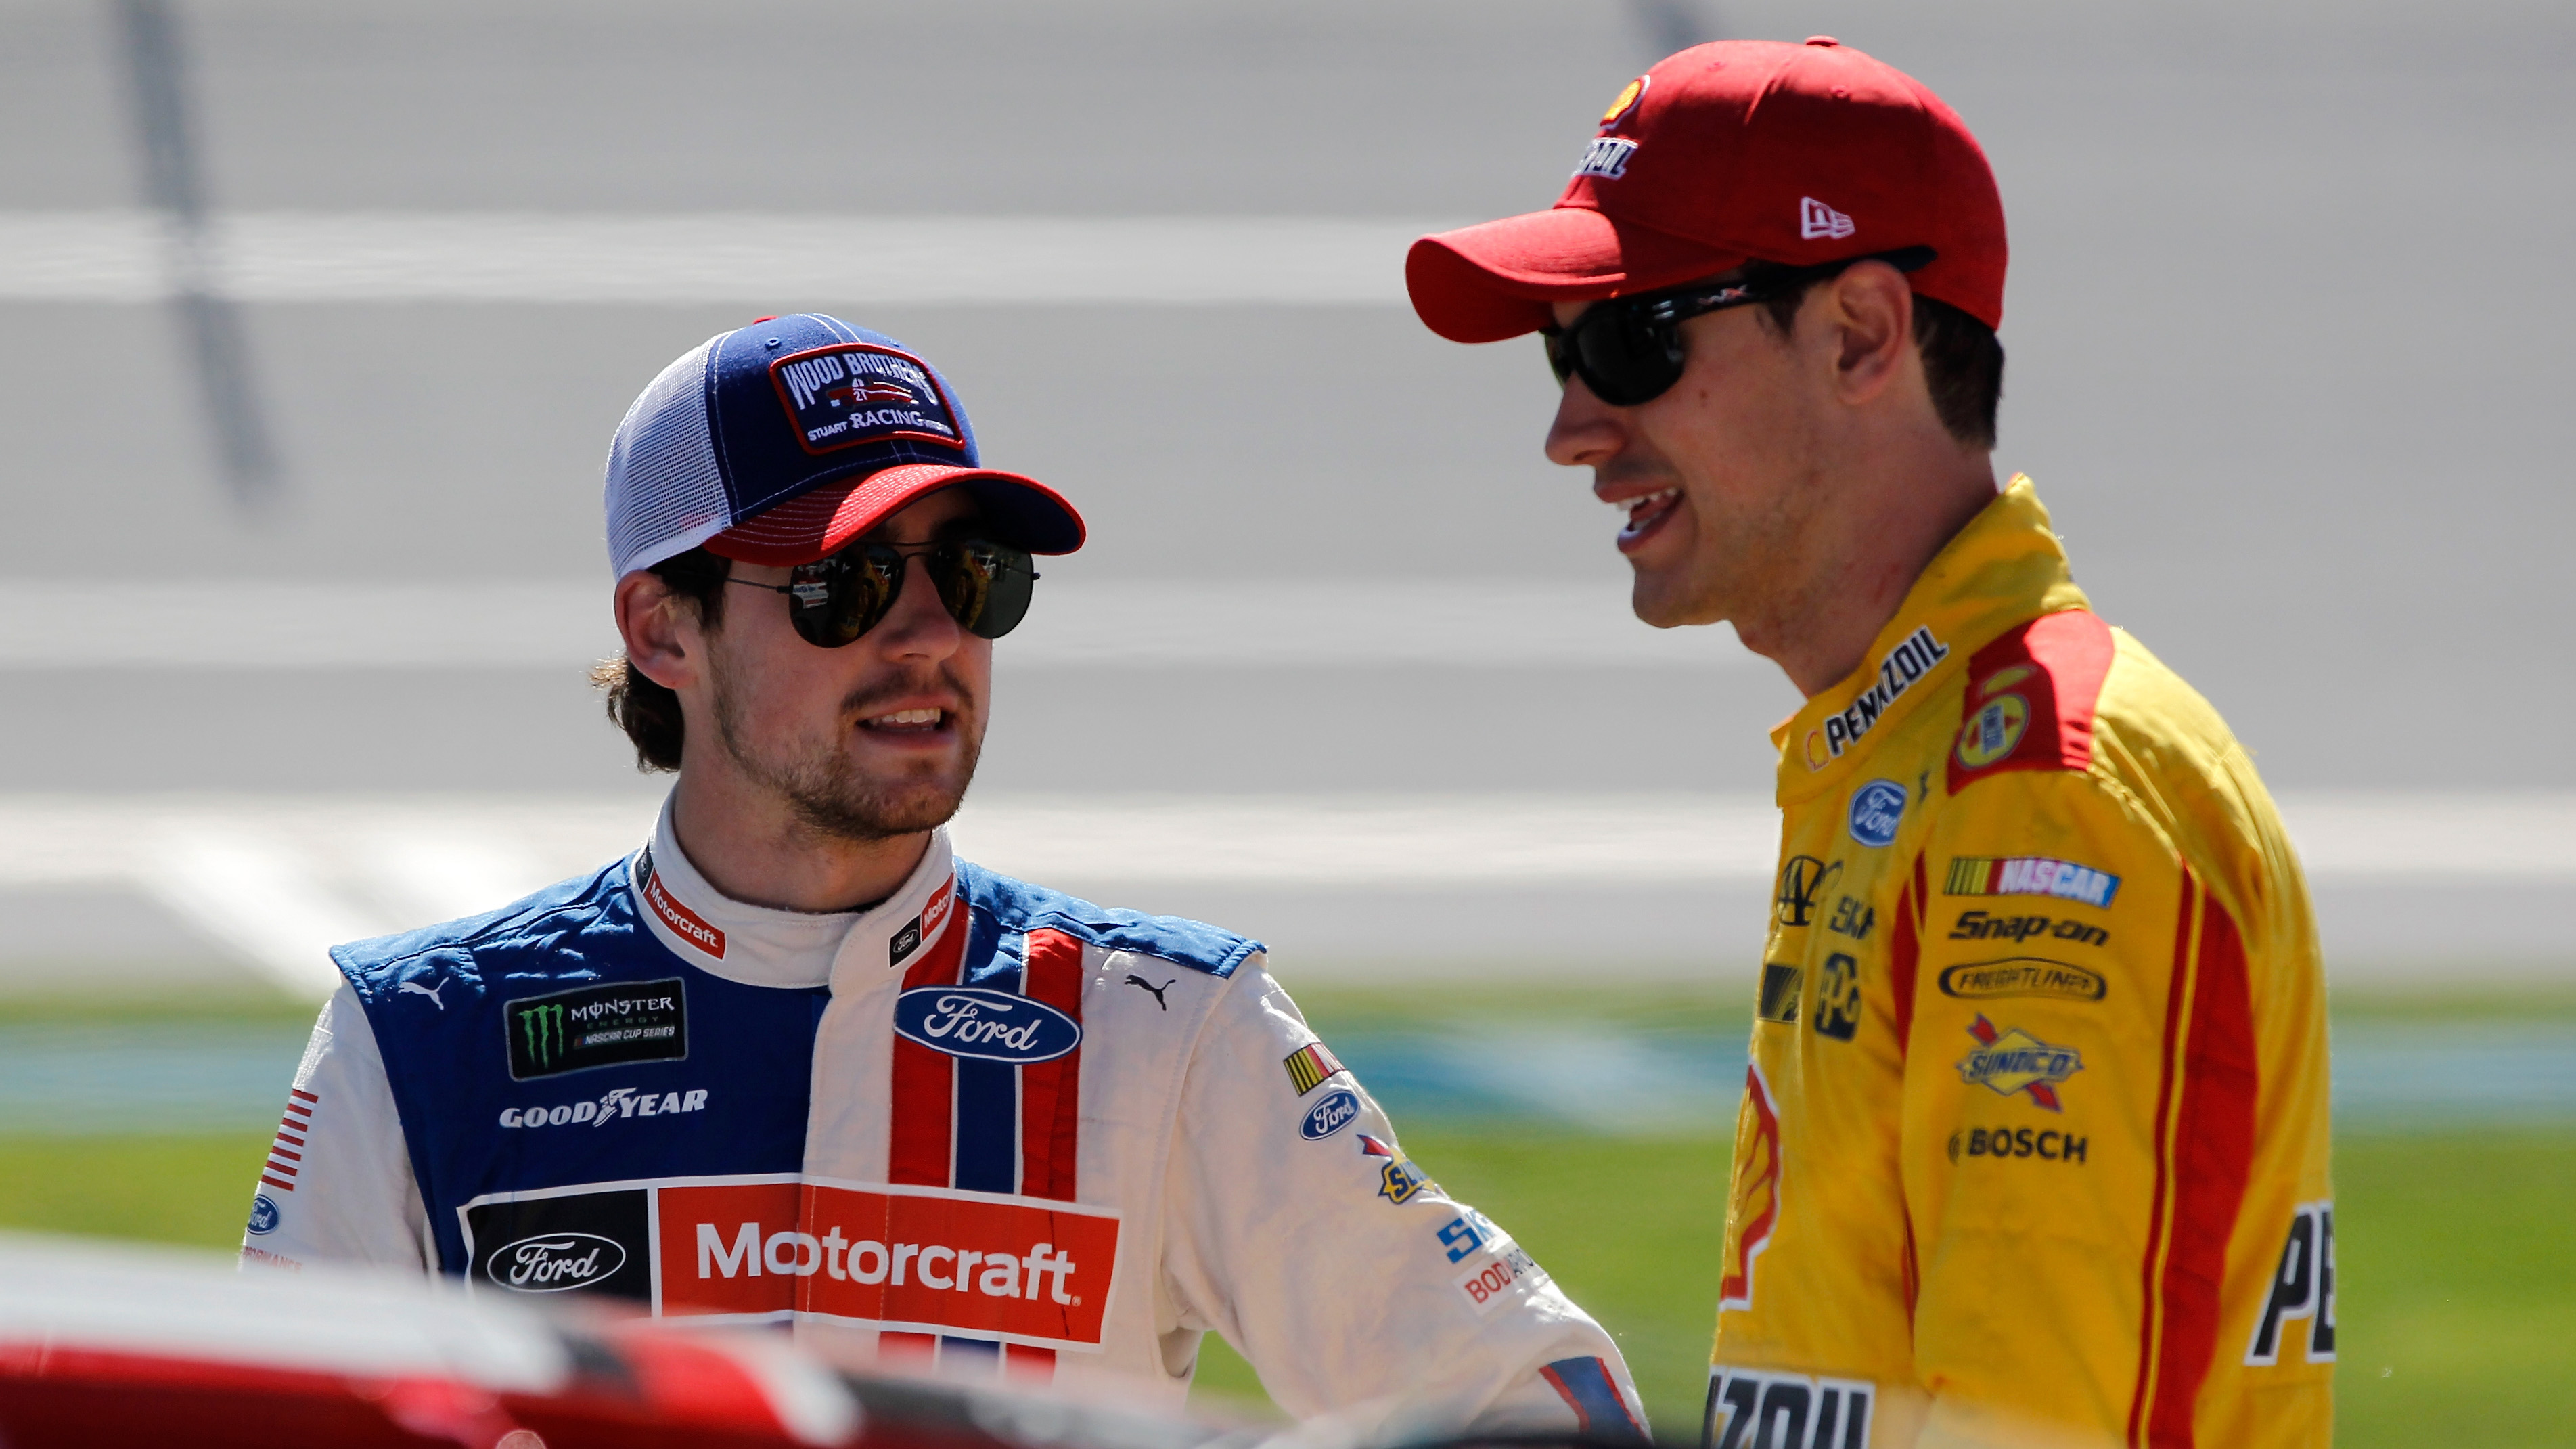 TALLADEGA, AL - MAY 06:  Ryan Blaney, driver of the #21 Motorcraft/Quick Lane Tire & Auto Center Ford, talks to Joey Logano, driver of the #22 Shell Pennzoil Ford, on the grid during qualifying for the Monster Energy NASCAR Cup Series GEICO 500 at Talladega Superspeedway on May 6, 2017 in Talladega, Alabama.  (Photo by Brian Lawdermilk/Getty Images)